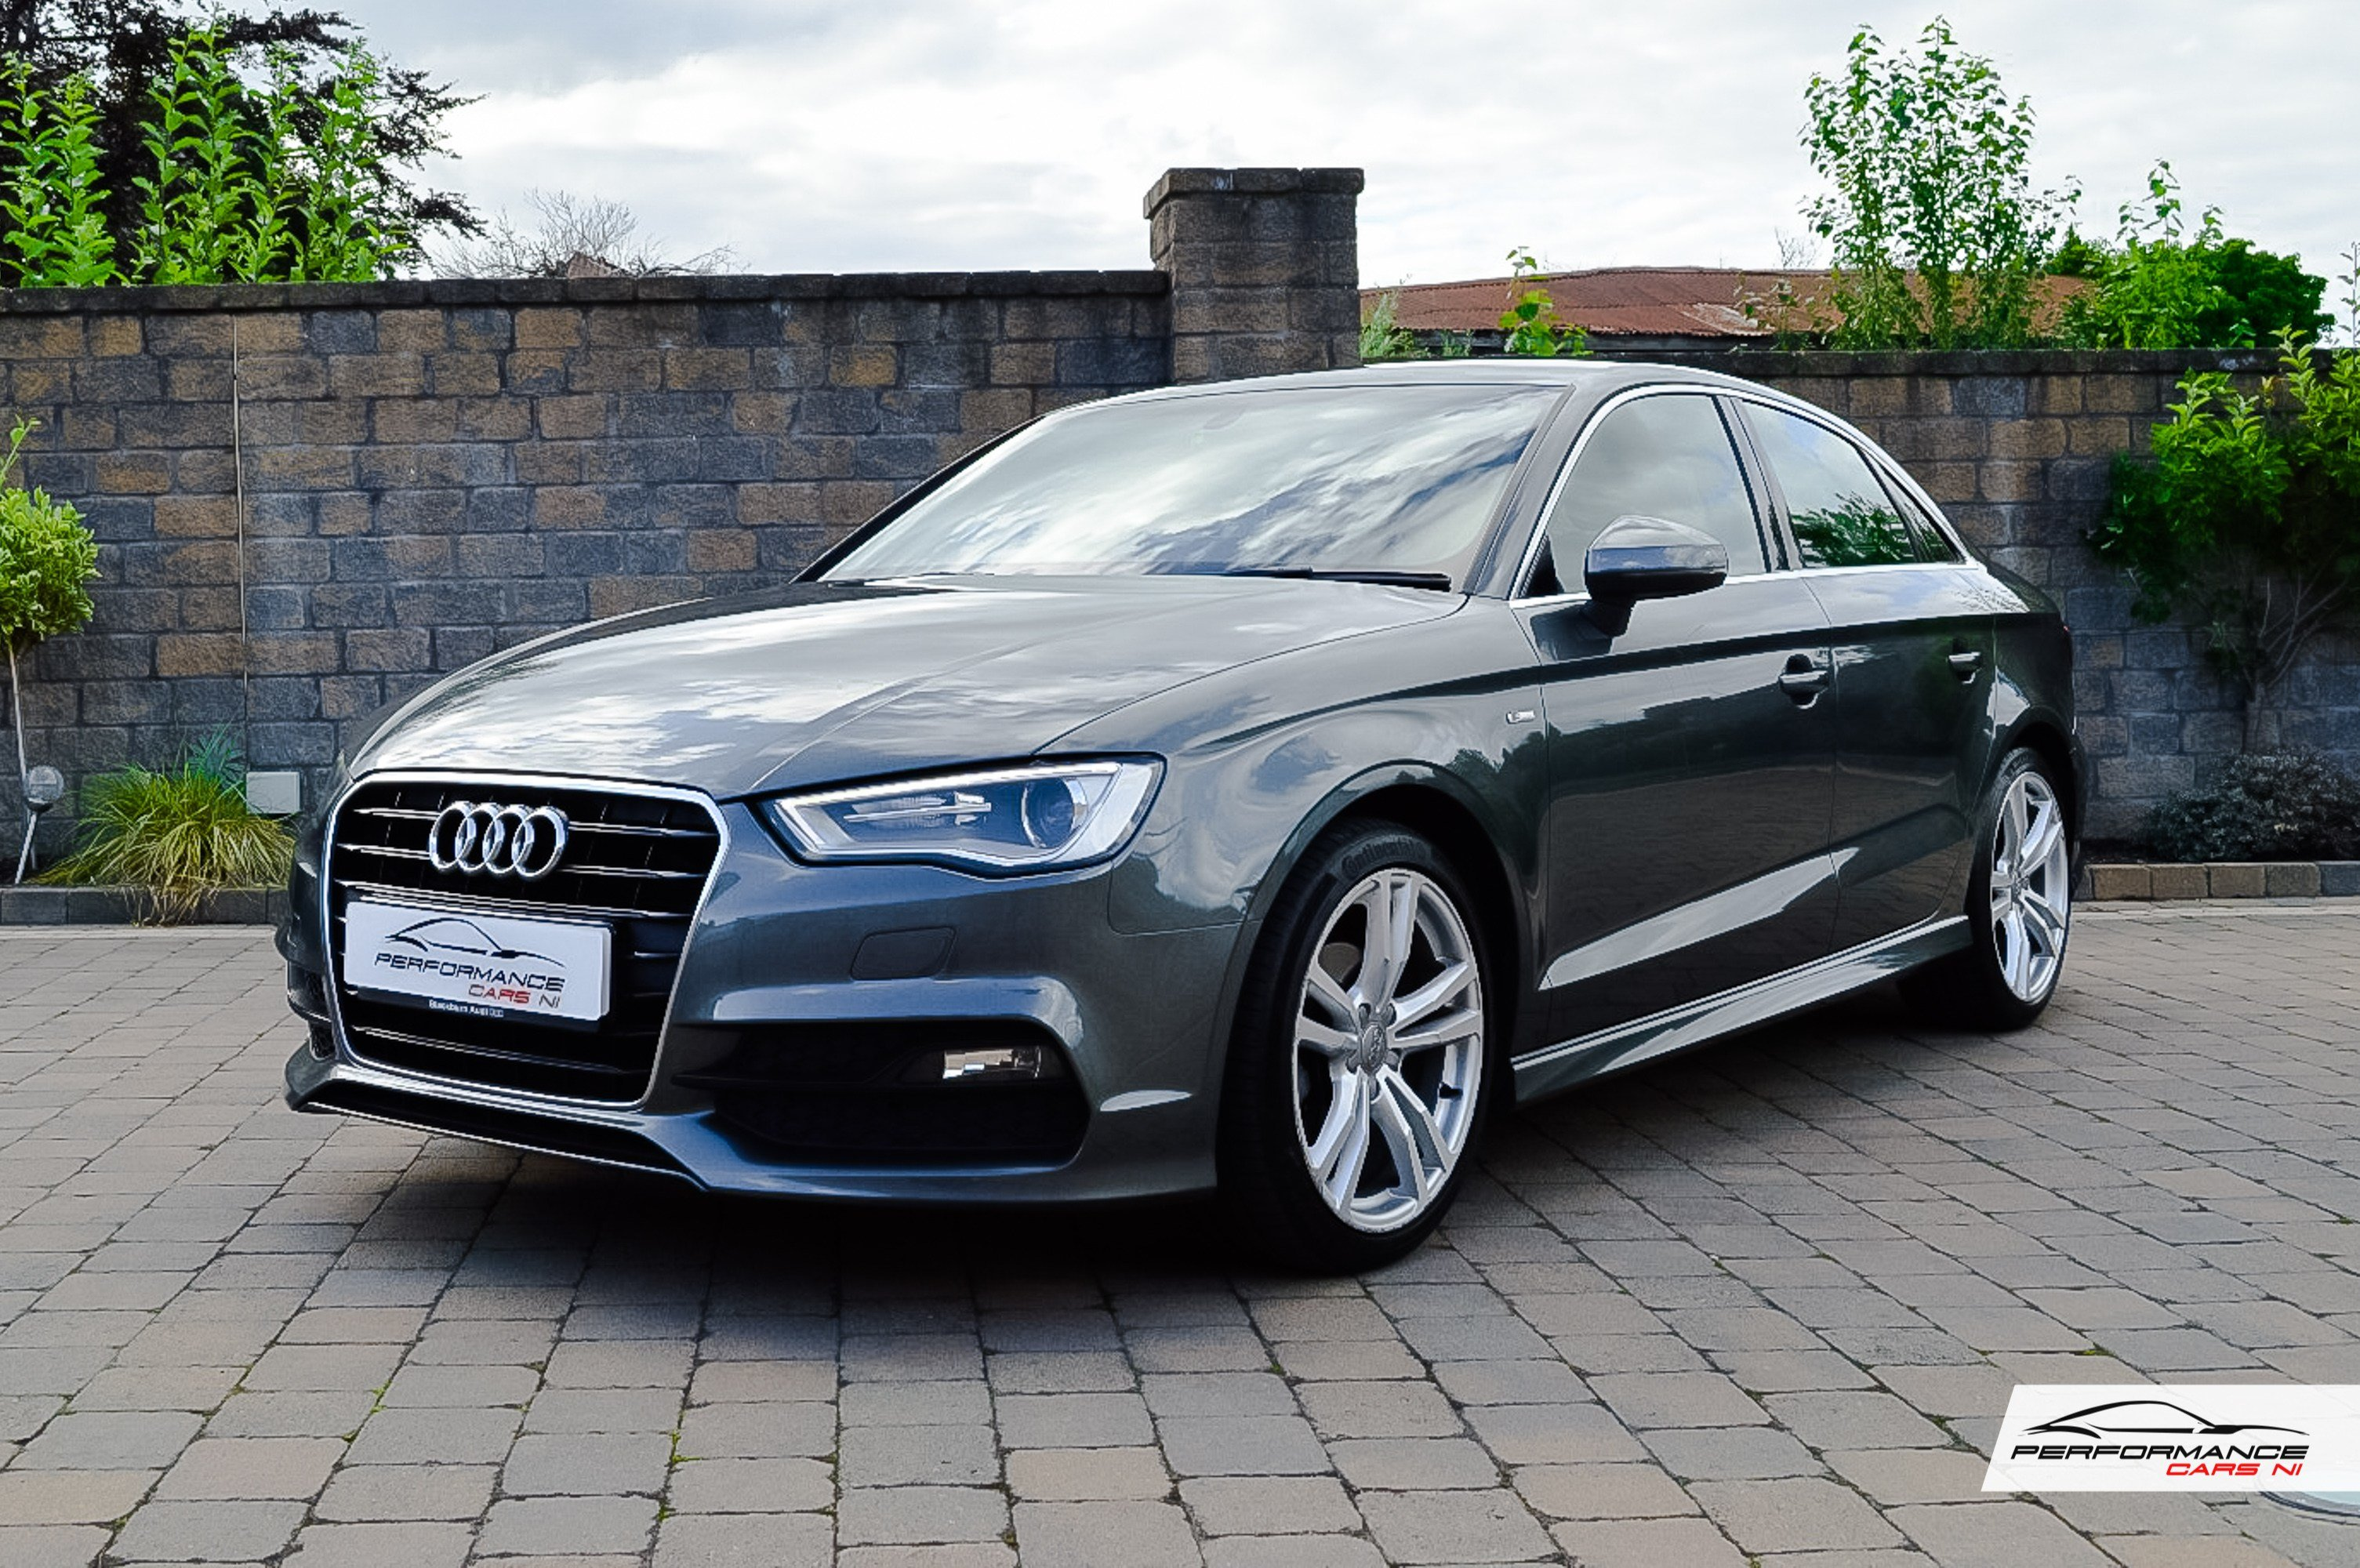 Latest Audi A3 Saloon Performance Cars Ni Passionate About Free Download